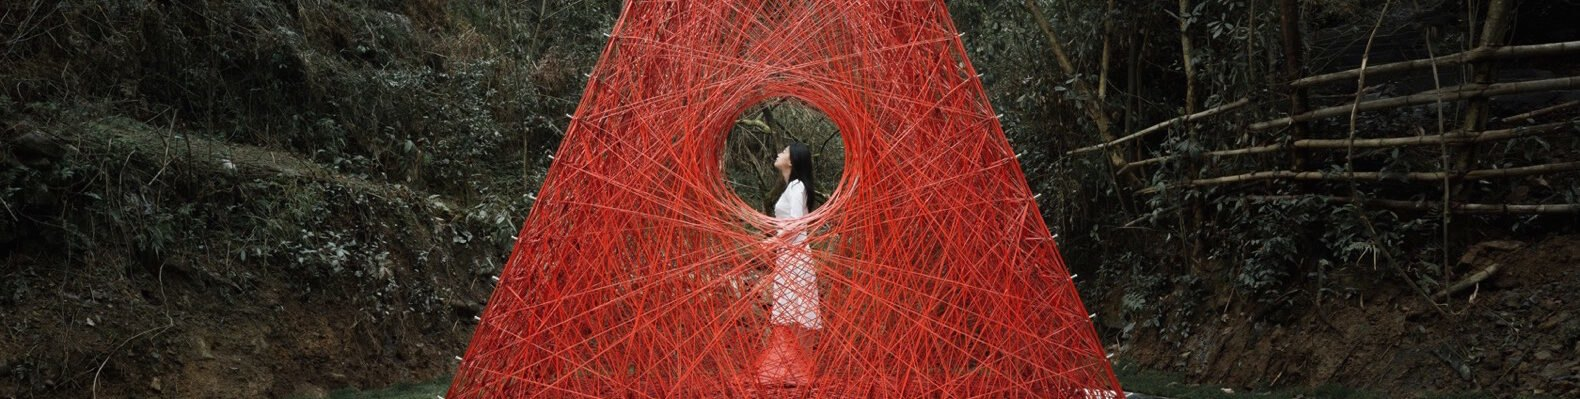 woman standing inside red woven triangle pavilion